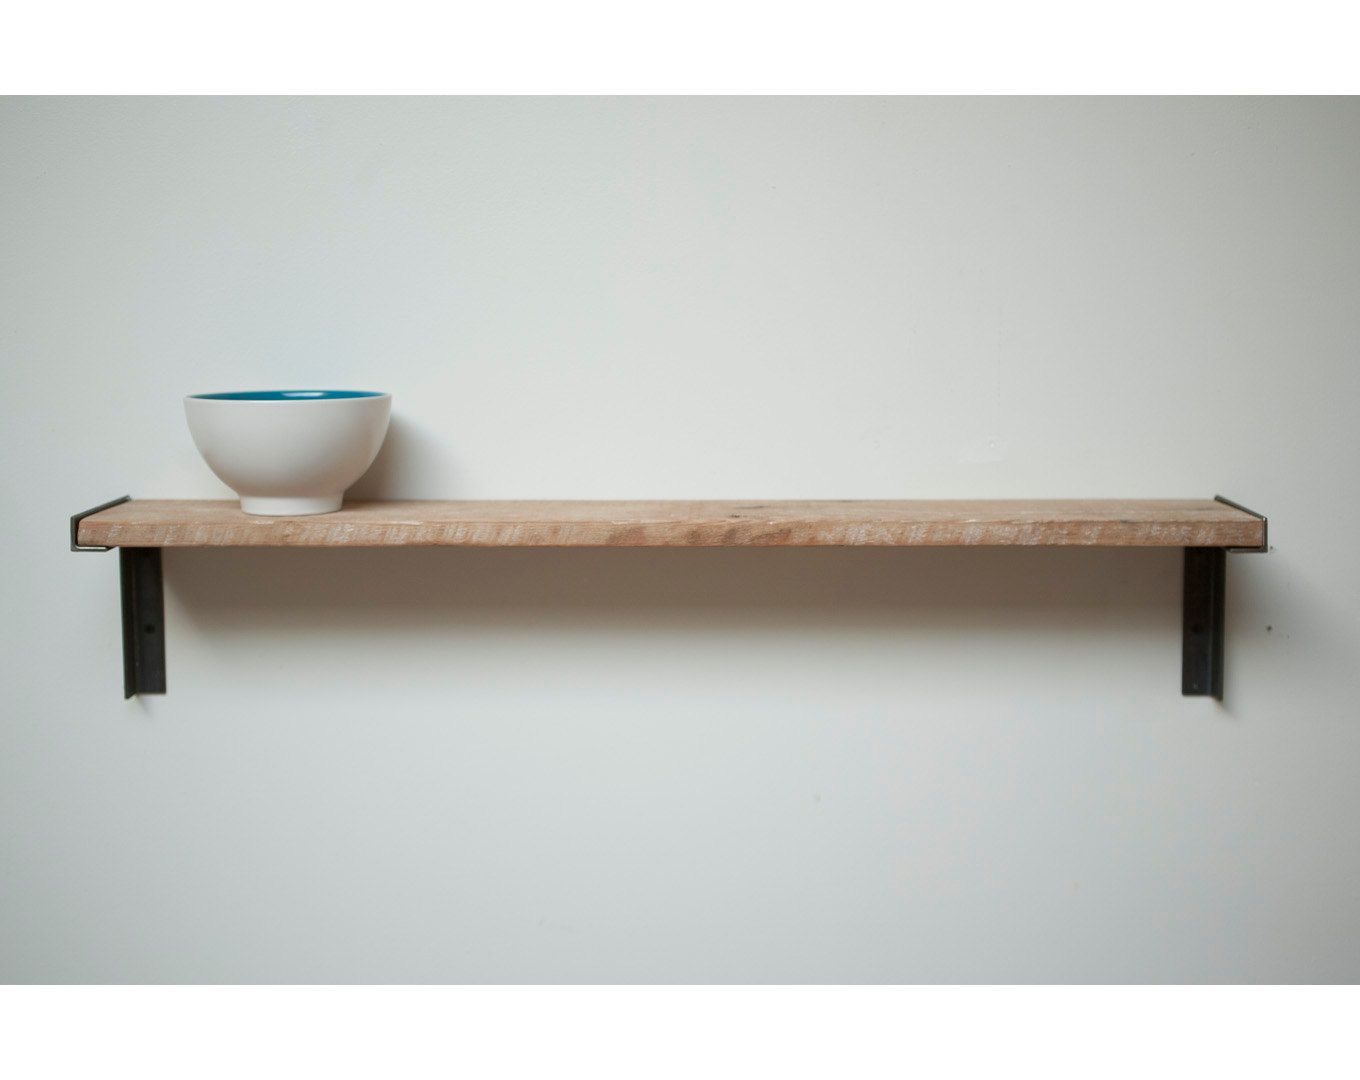 Reclaimed Wood And Metal Wall Shelves: Minimal Wall Mount Shelf. Reclaimed Old Growth Wood And